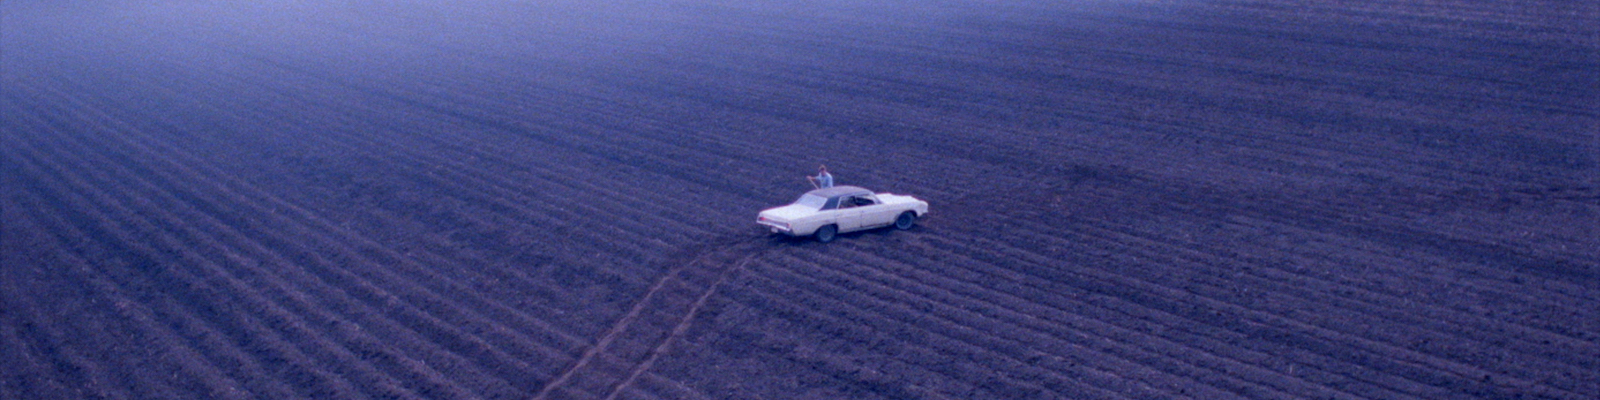 Aerial view of a man standing beside a car in a plowed field